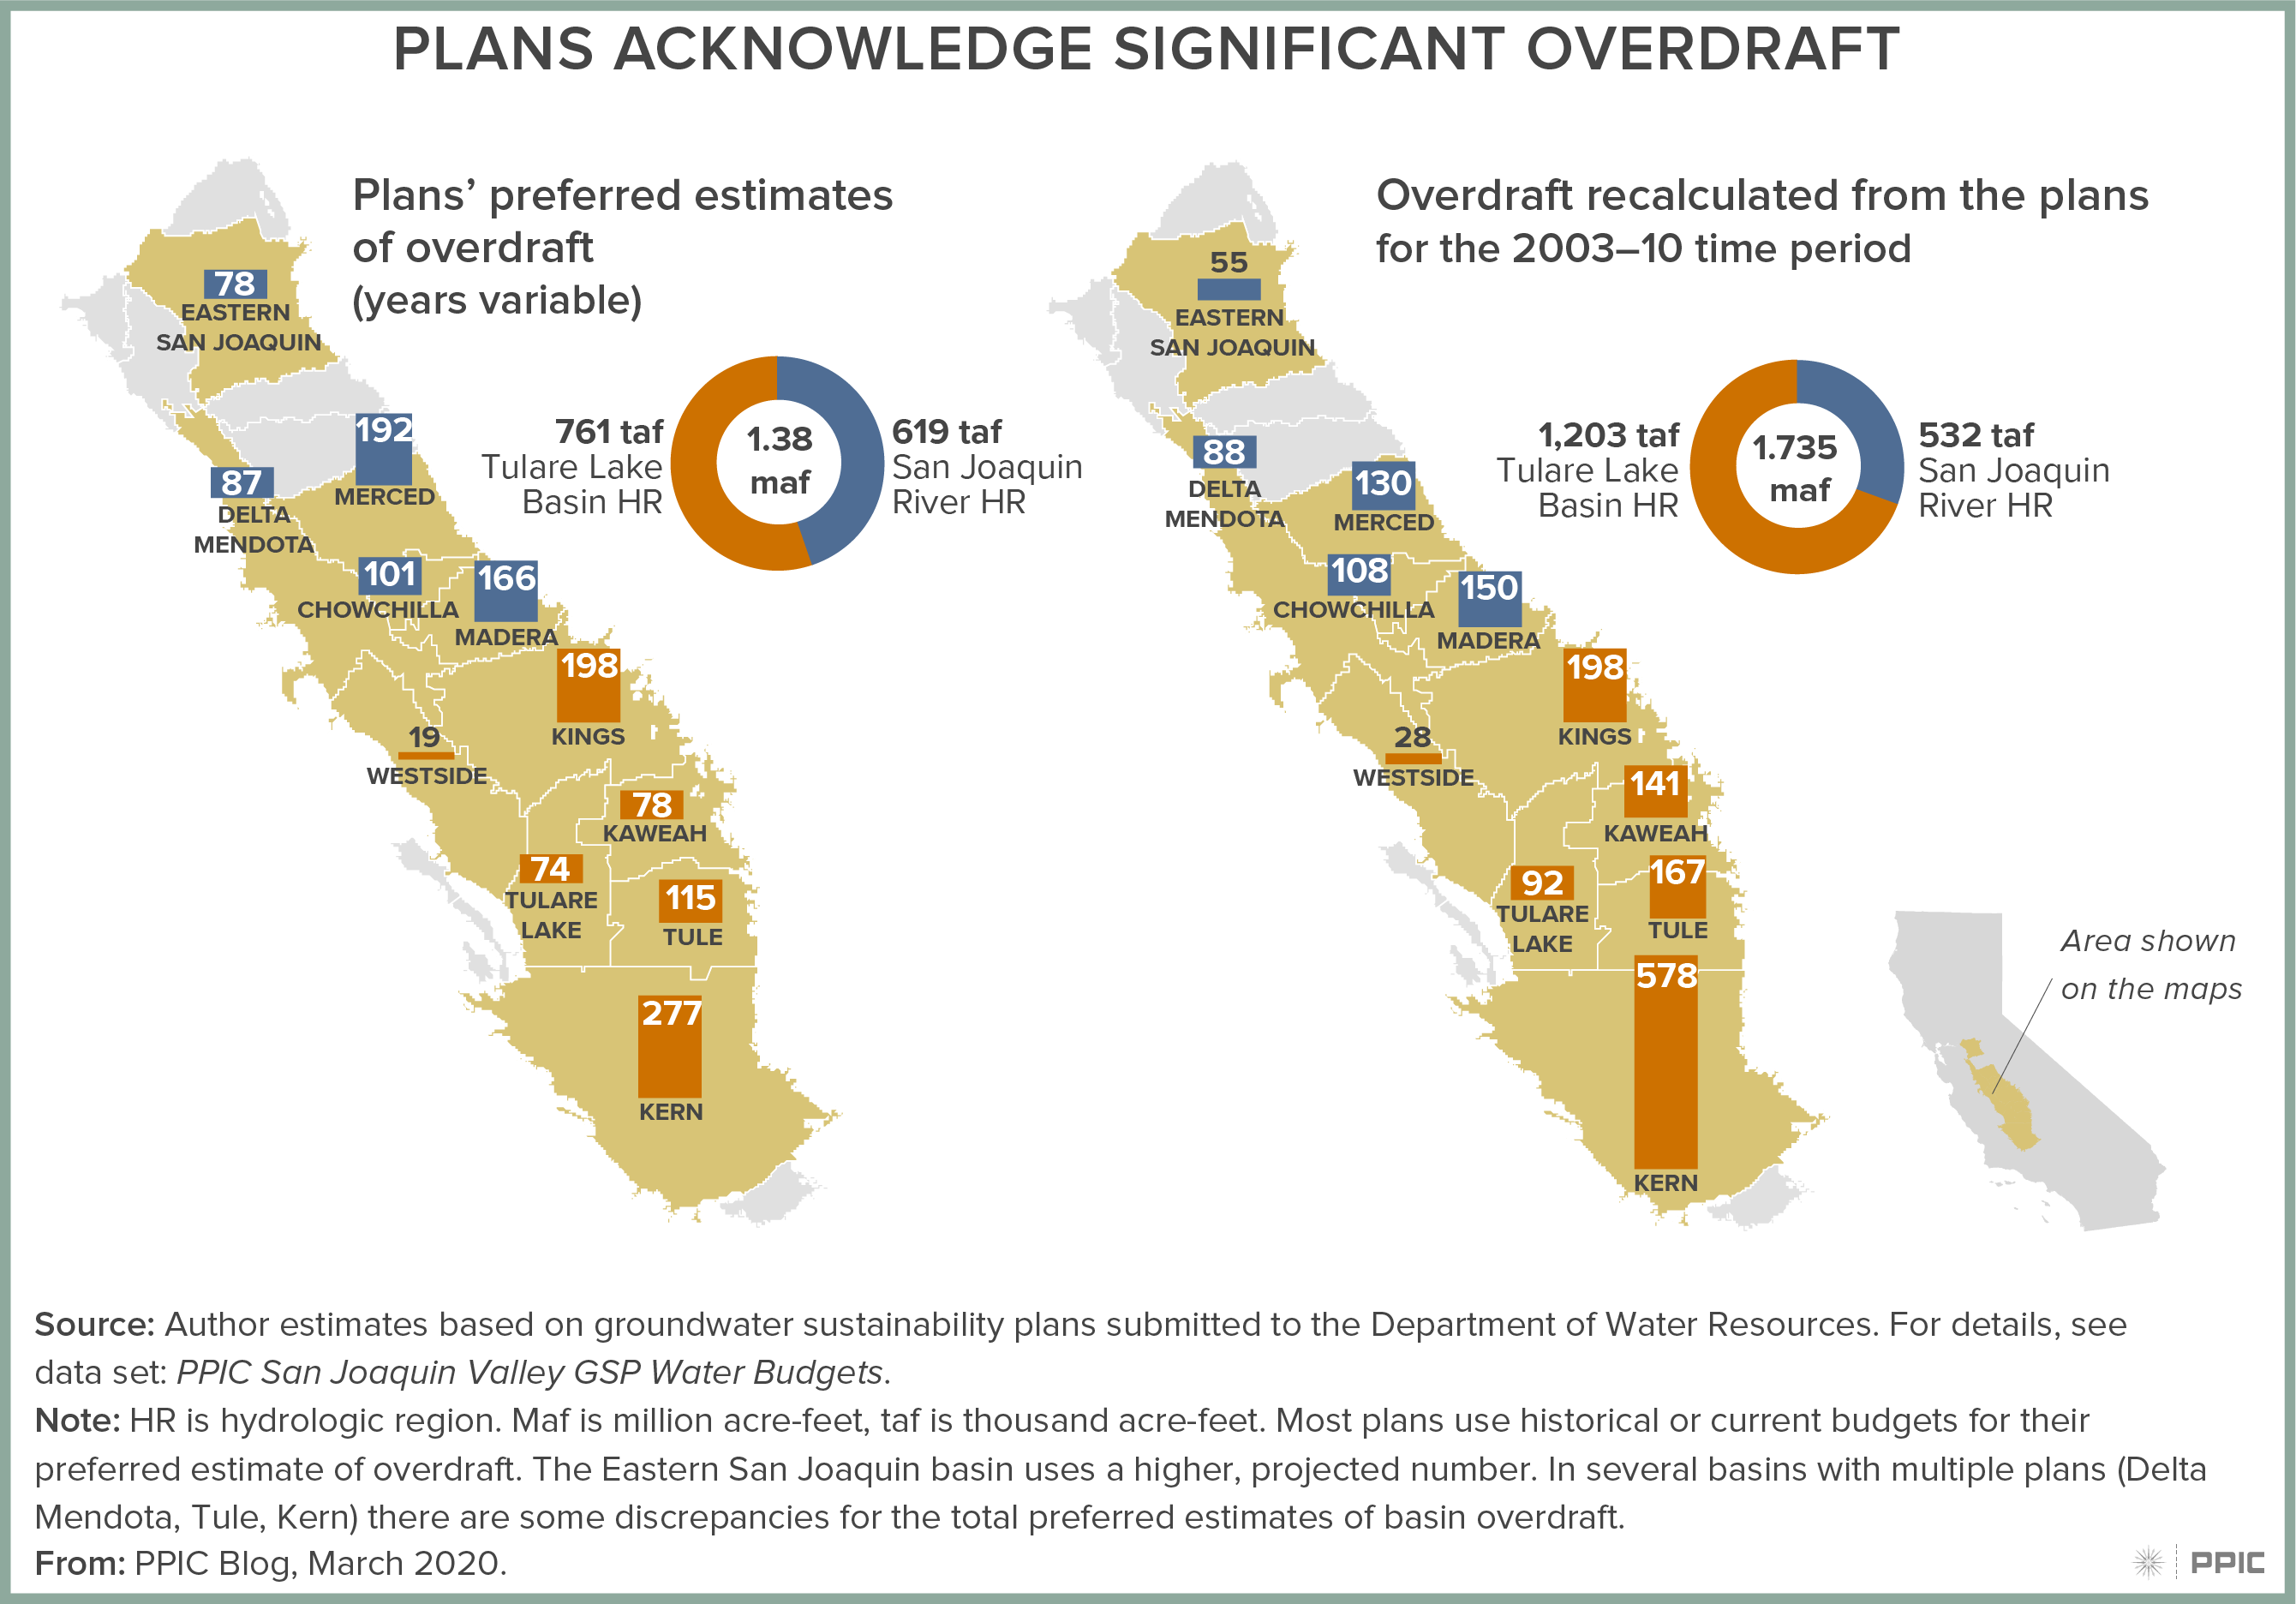 figure - Plans Acknowledge Significant Overdraft